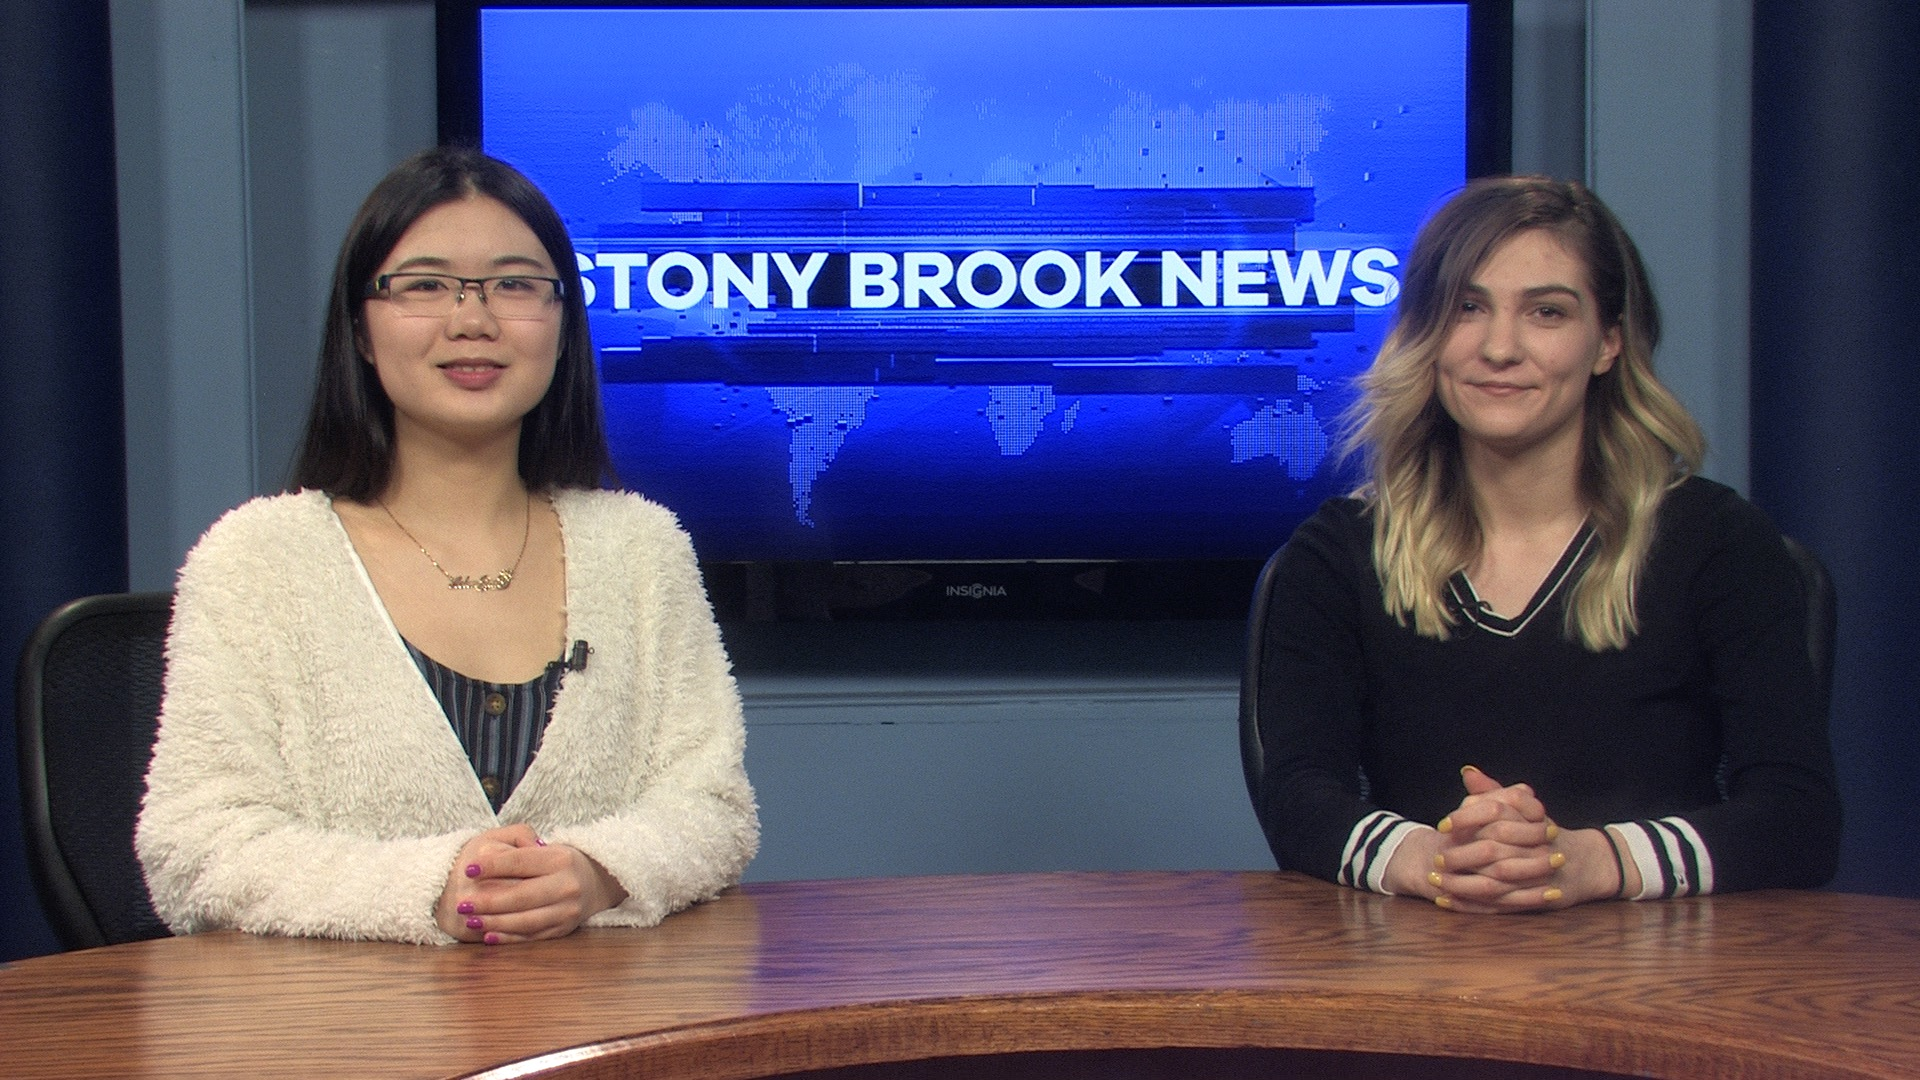 Stony Brook Newsbreak – April 9, 2019